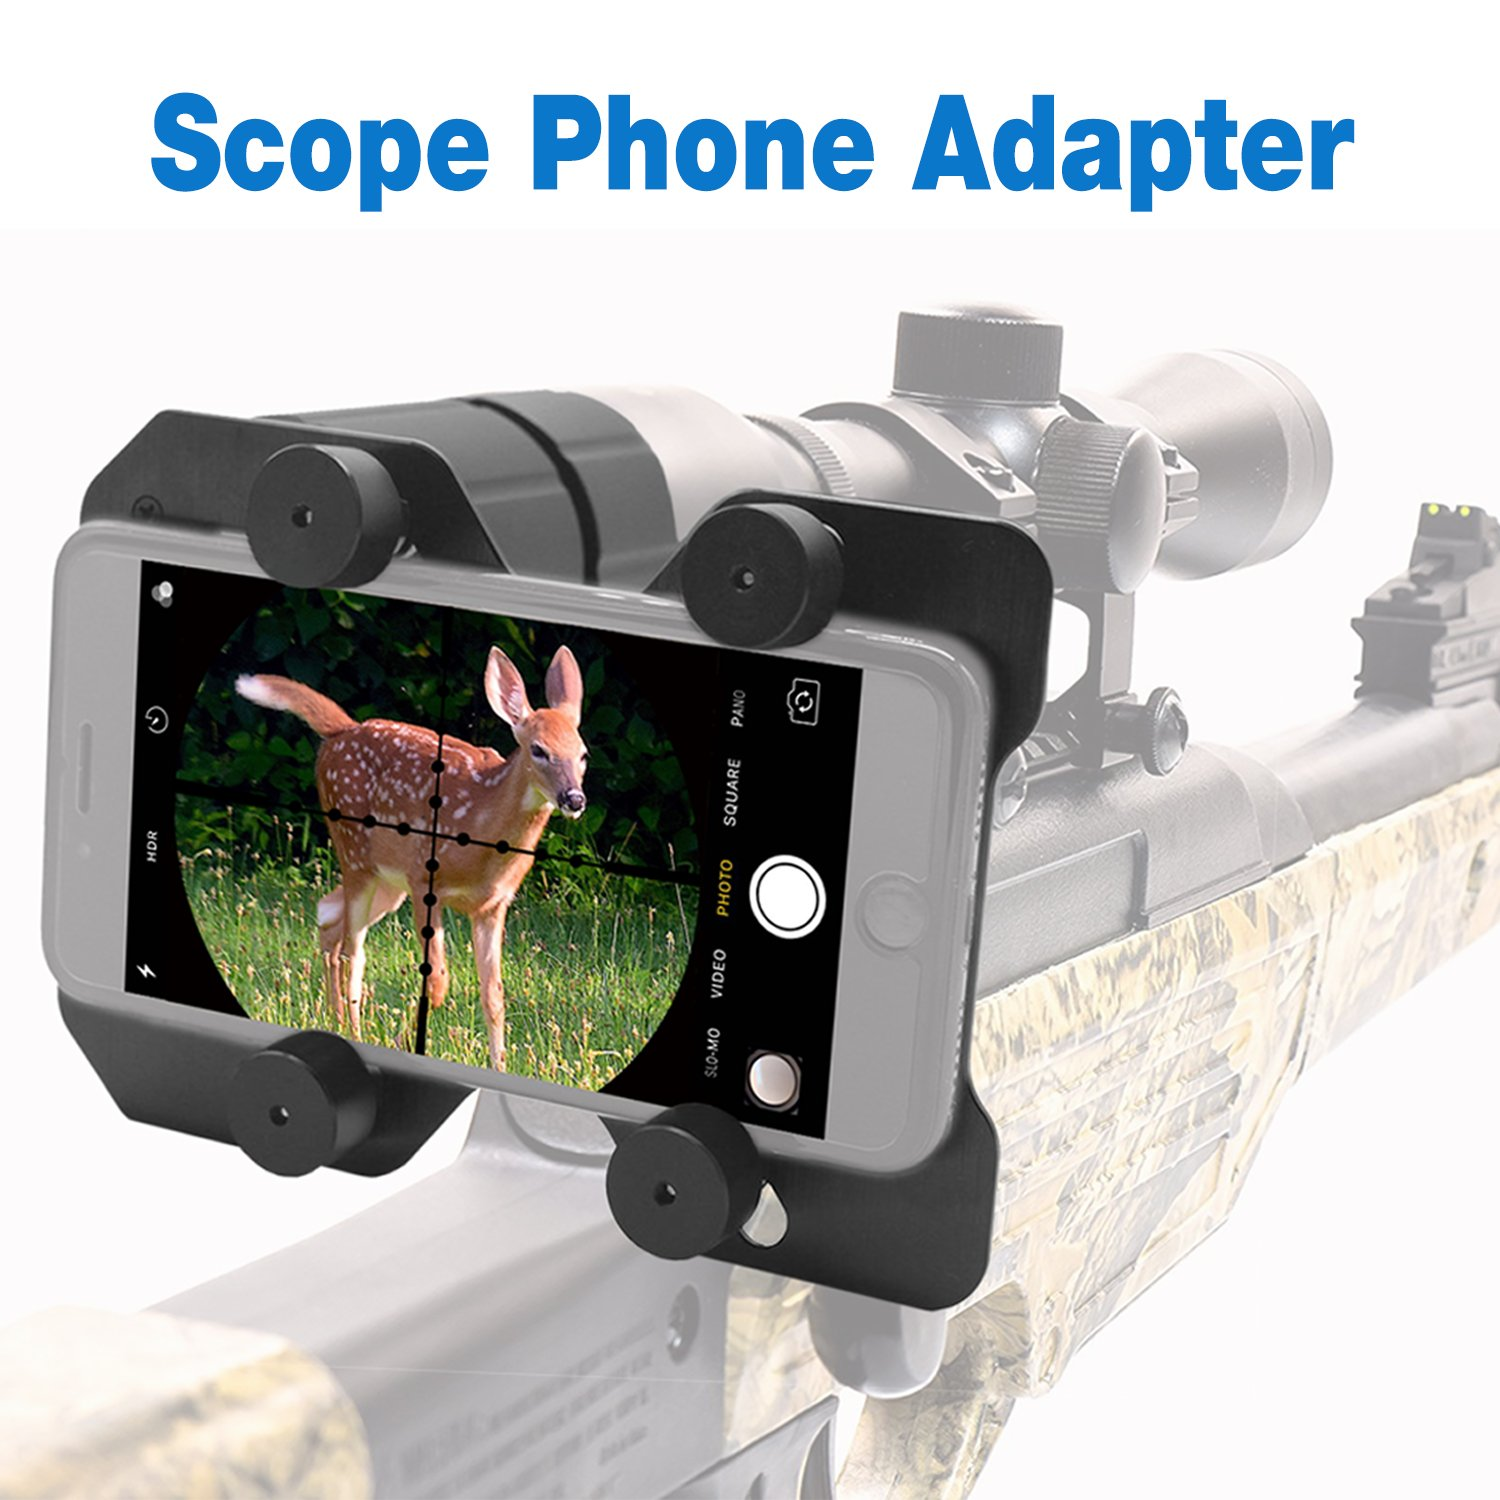 Faittoo Bestguarder Hunting Scope Cam Adapter Rifle Scope Phone Camera Mounting System Smart Shoot Scope Mount Adapter Spotting Holder for Air Gun Scope - Record Hunt Via Cell Phone (Aluminium Alloy)